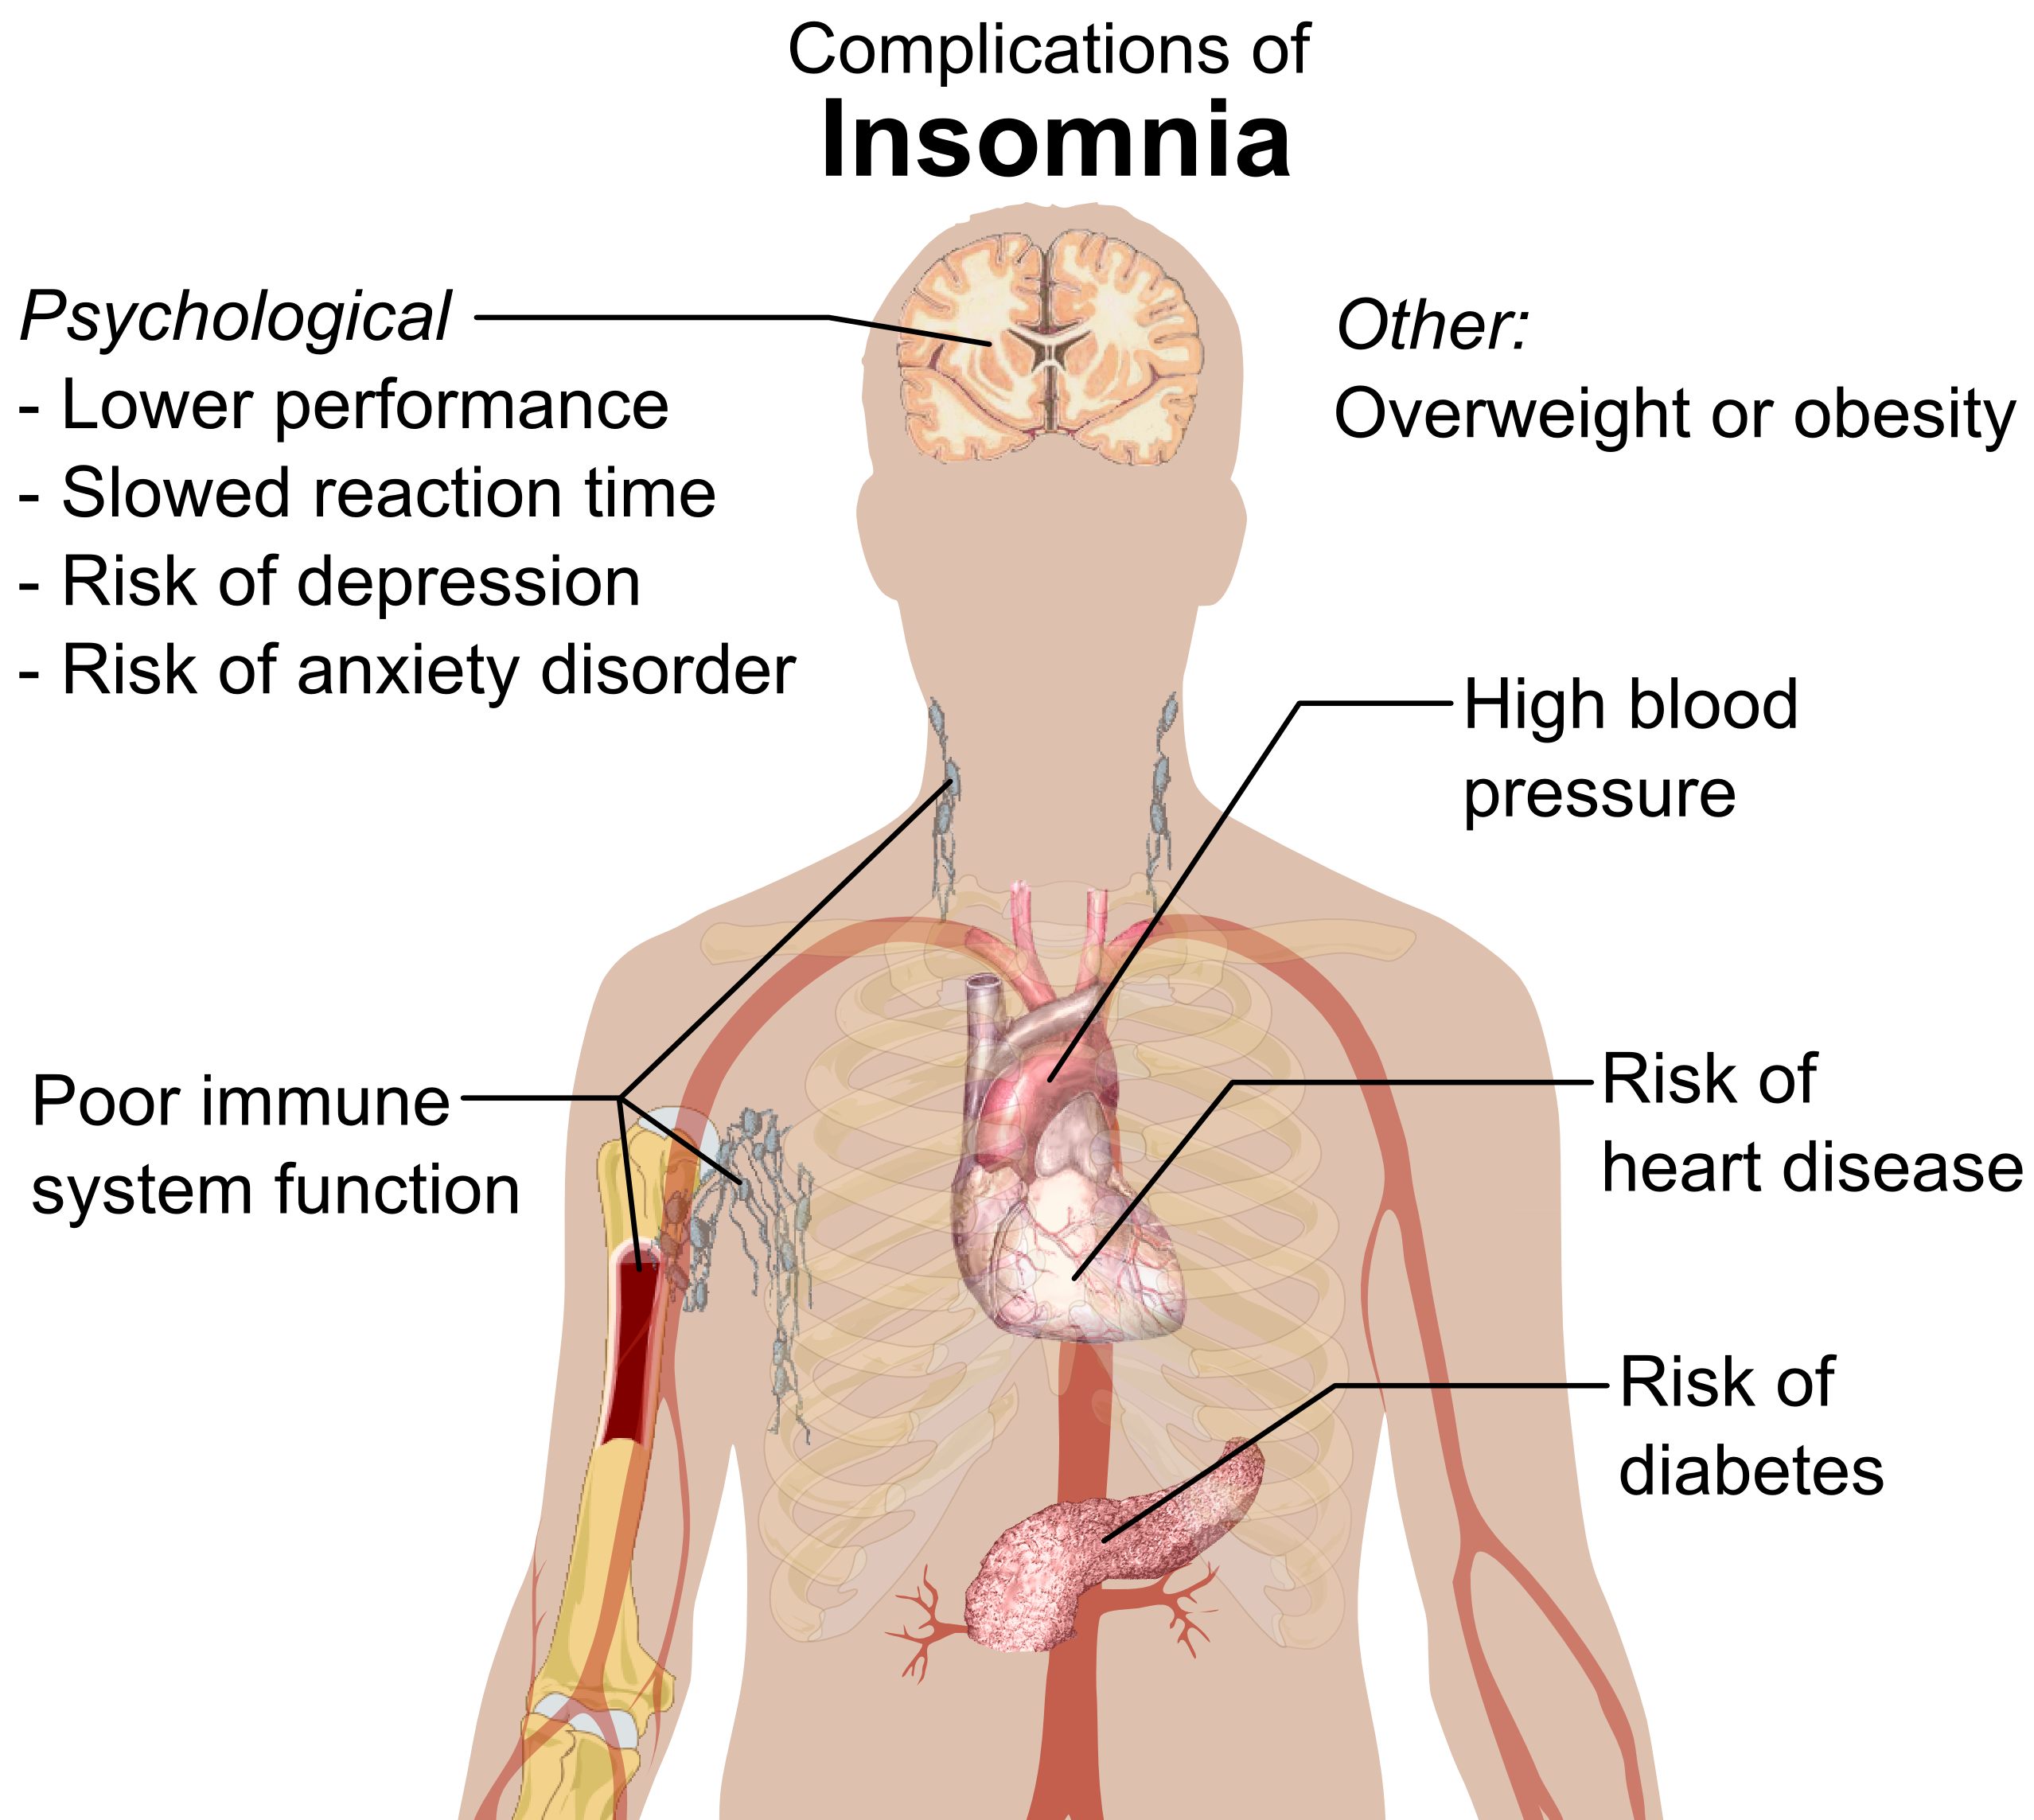 Complications of insomnia - How Does Cannabidiol Affect Sleep and Insomnia?